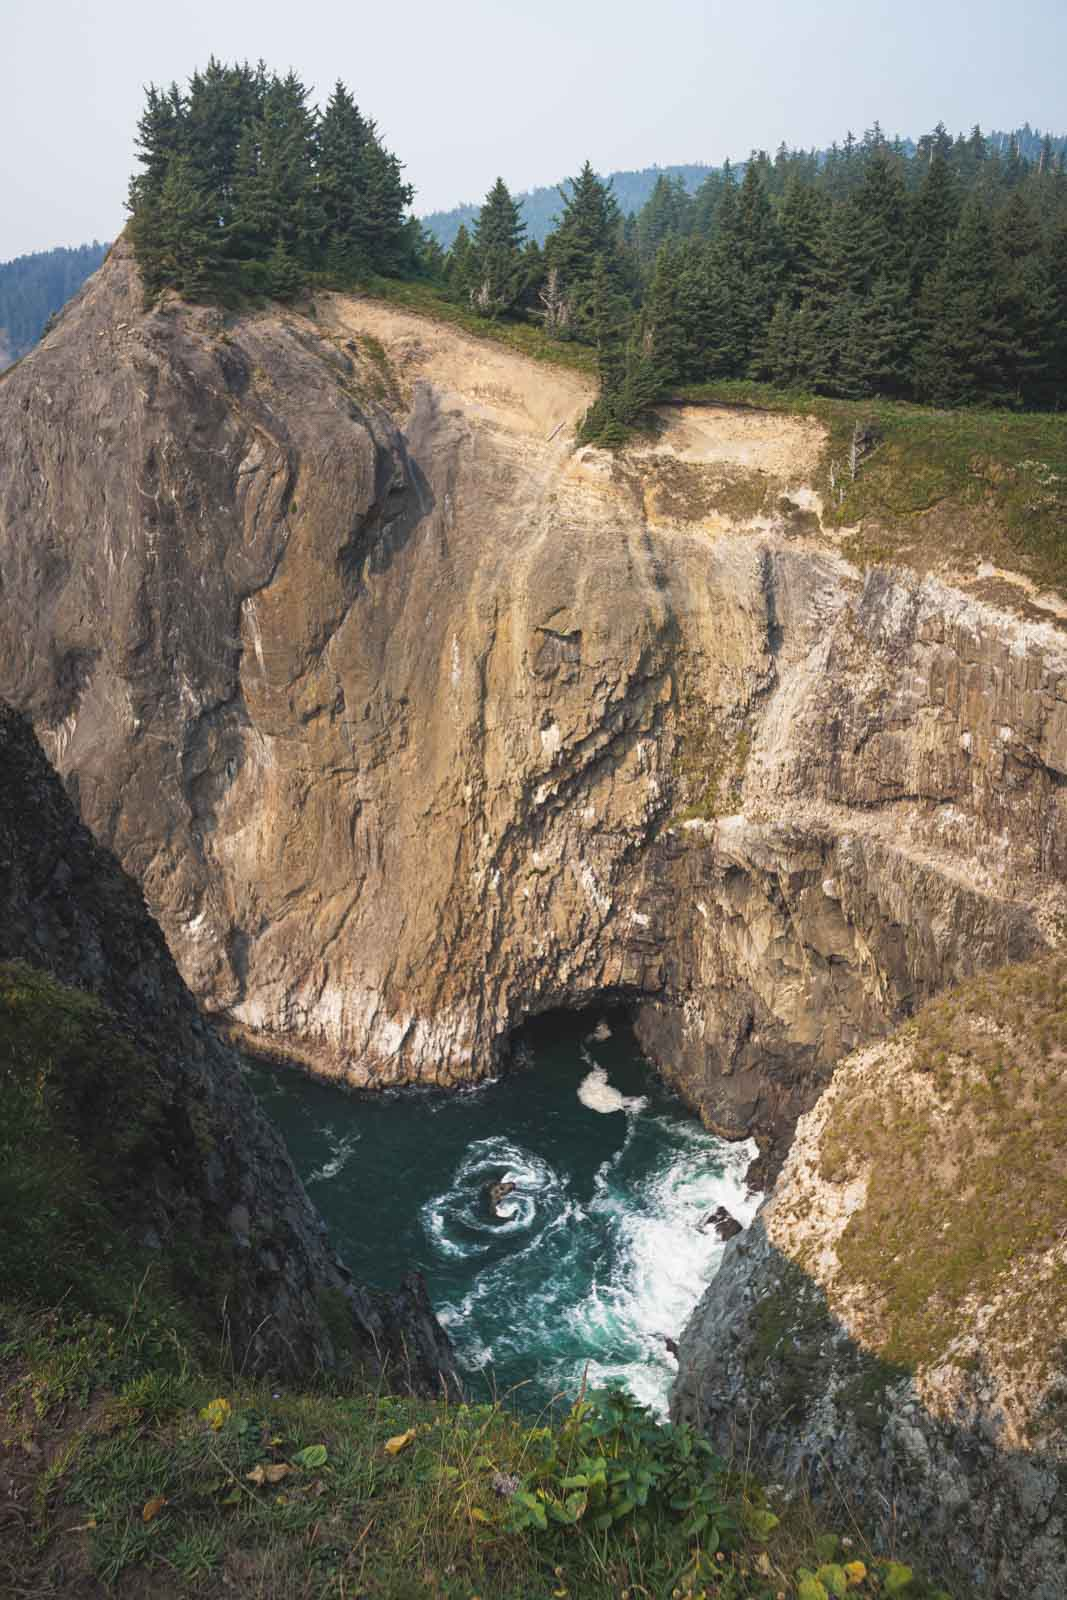 View of Devil's Cauldron on the Oregon Coast from above in Oswald West State Park